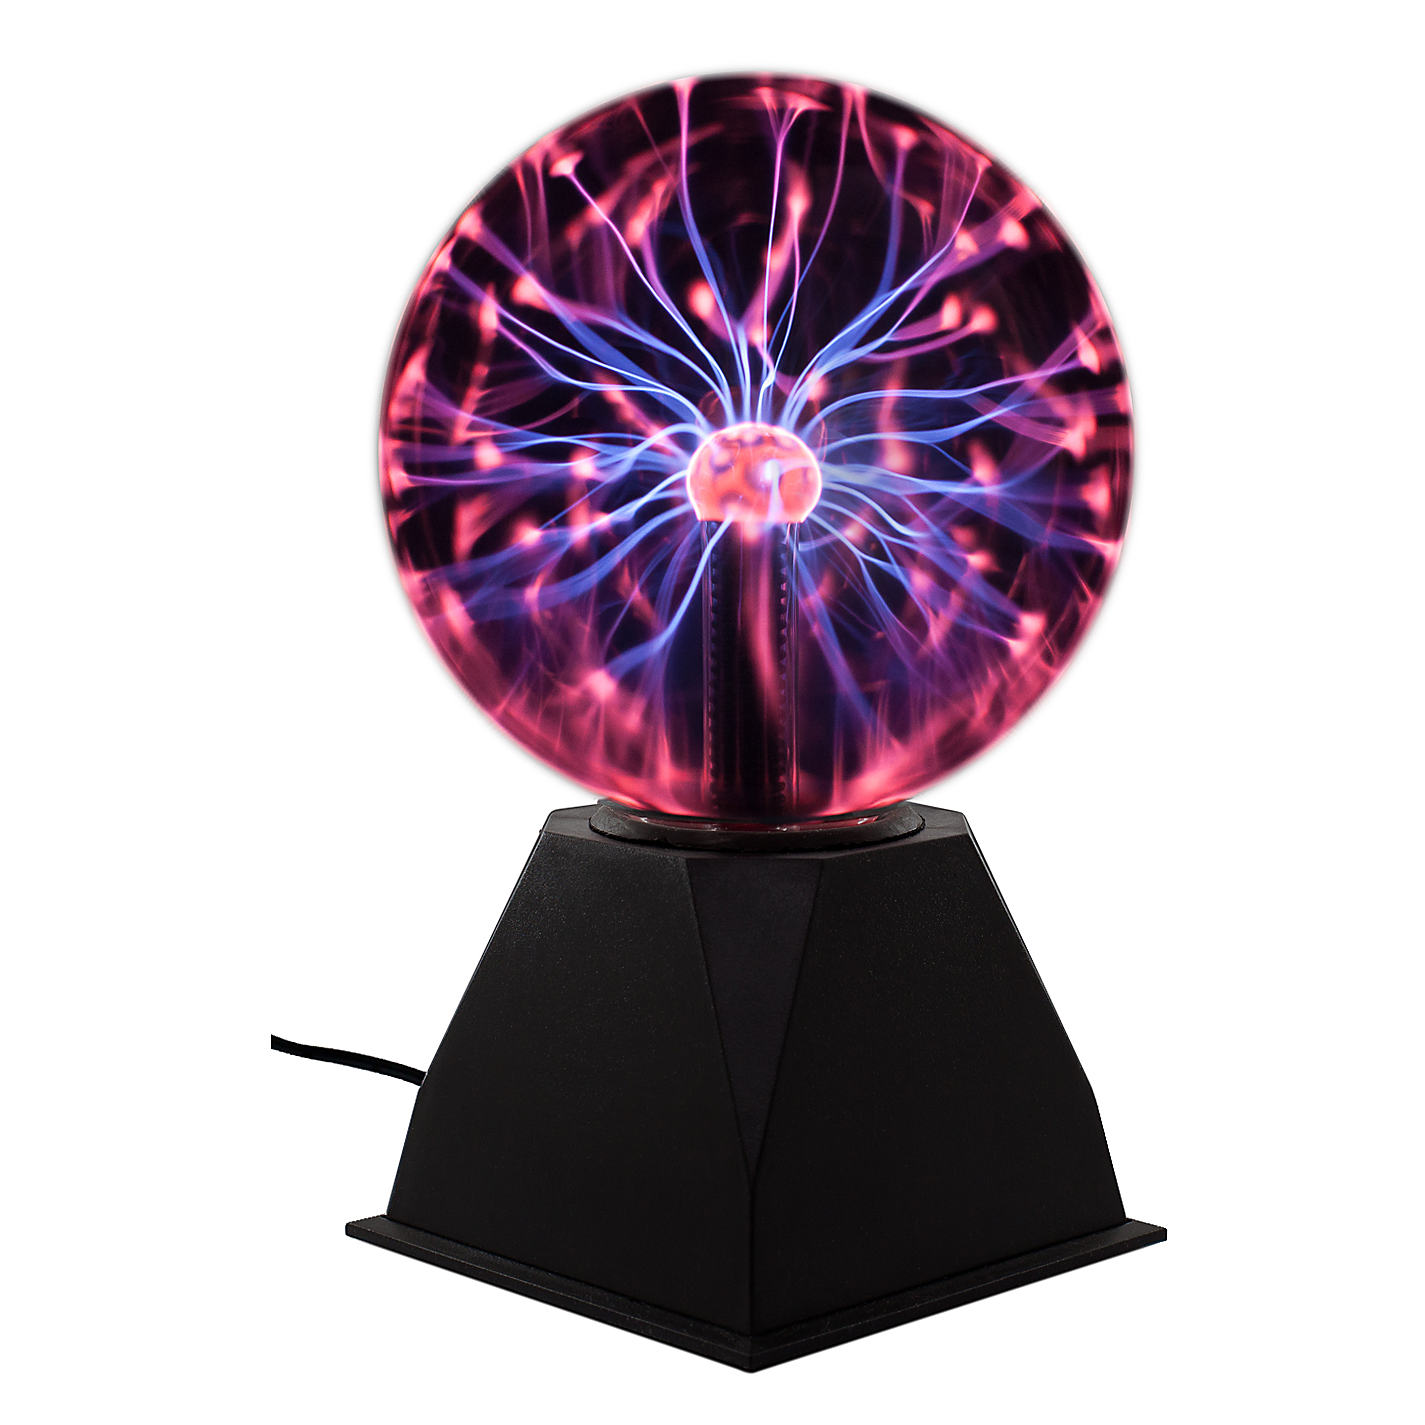 Mesmerizing Novelty  Gadget Gifts  Gifts  John Lewis With Magnificent Buy Red Plasma Ball Online At Johnlewiscom With Astounding Happy Garden Middleton Also Yerba Gardens San Francisco In Addition Gardens In Leeds And Small Garden Design Uk As Well As Garden Bed Soil Additionally Reading Forbury Gardens From Johnlewiscom With   Magnificent Novelty  Gadget Gifts  Gifts  John Lewis With Astounding Buy Red Plasma Ball Online At Johnlewiscom And Mesmerizing Happy Garden Middleton Also Yerba Gardens San Francisco In Addition Gardens In Leeds From Johnlewiscom